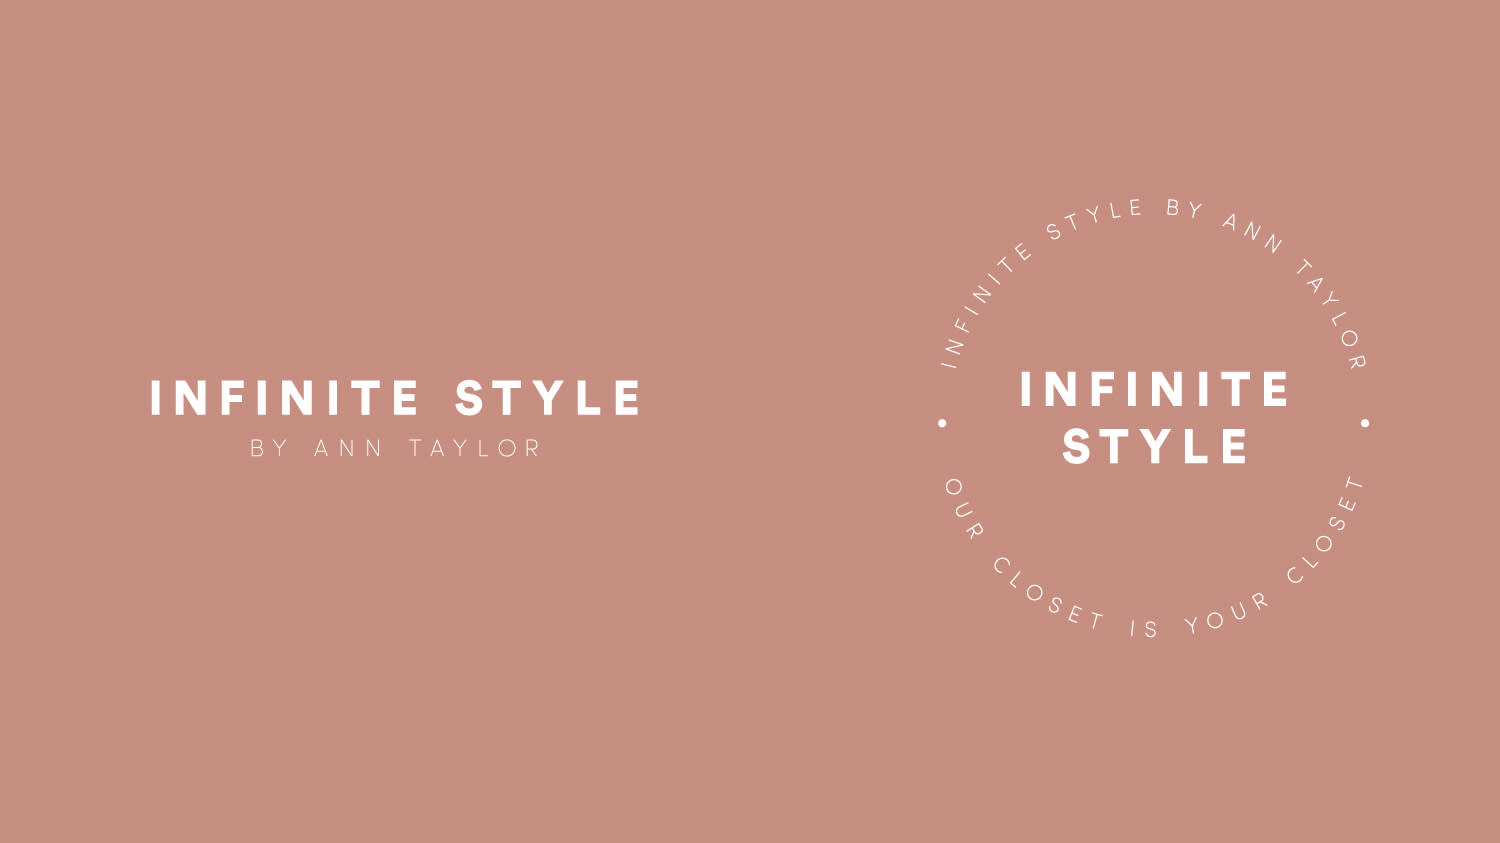 Infinite Style by Ann Taylor: Identity